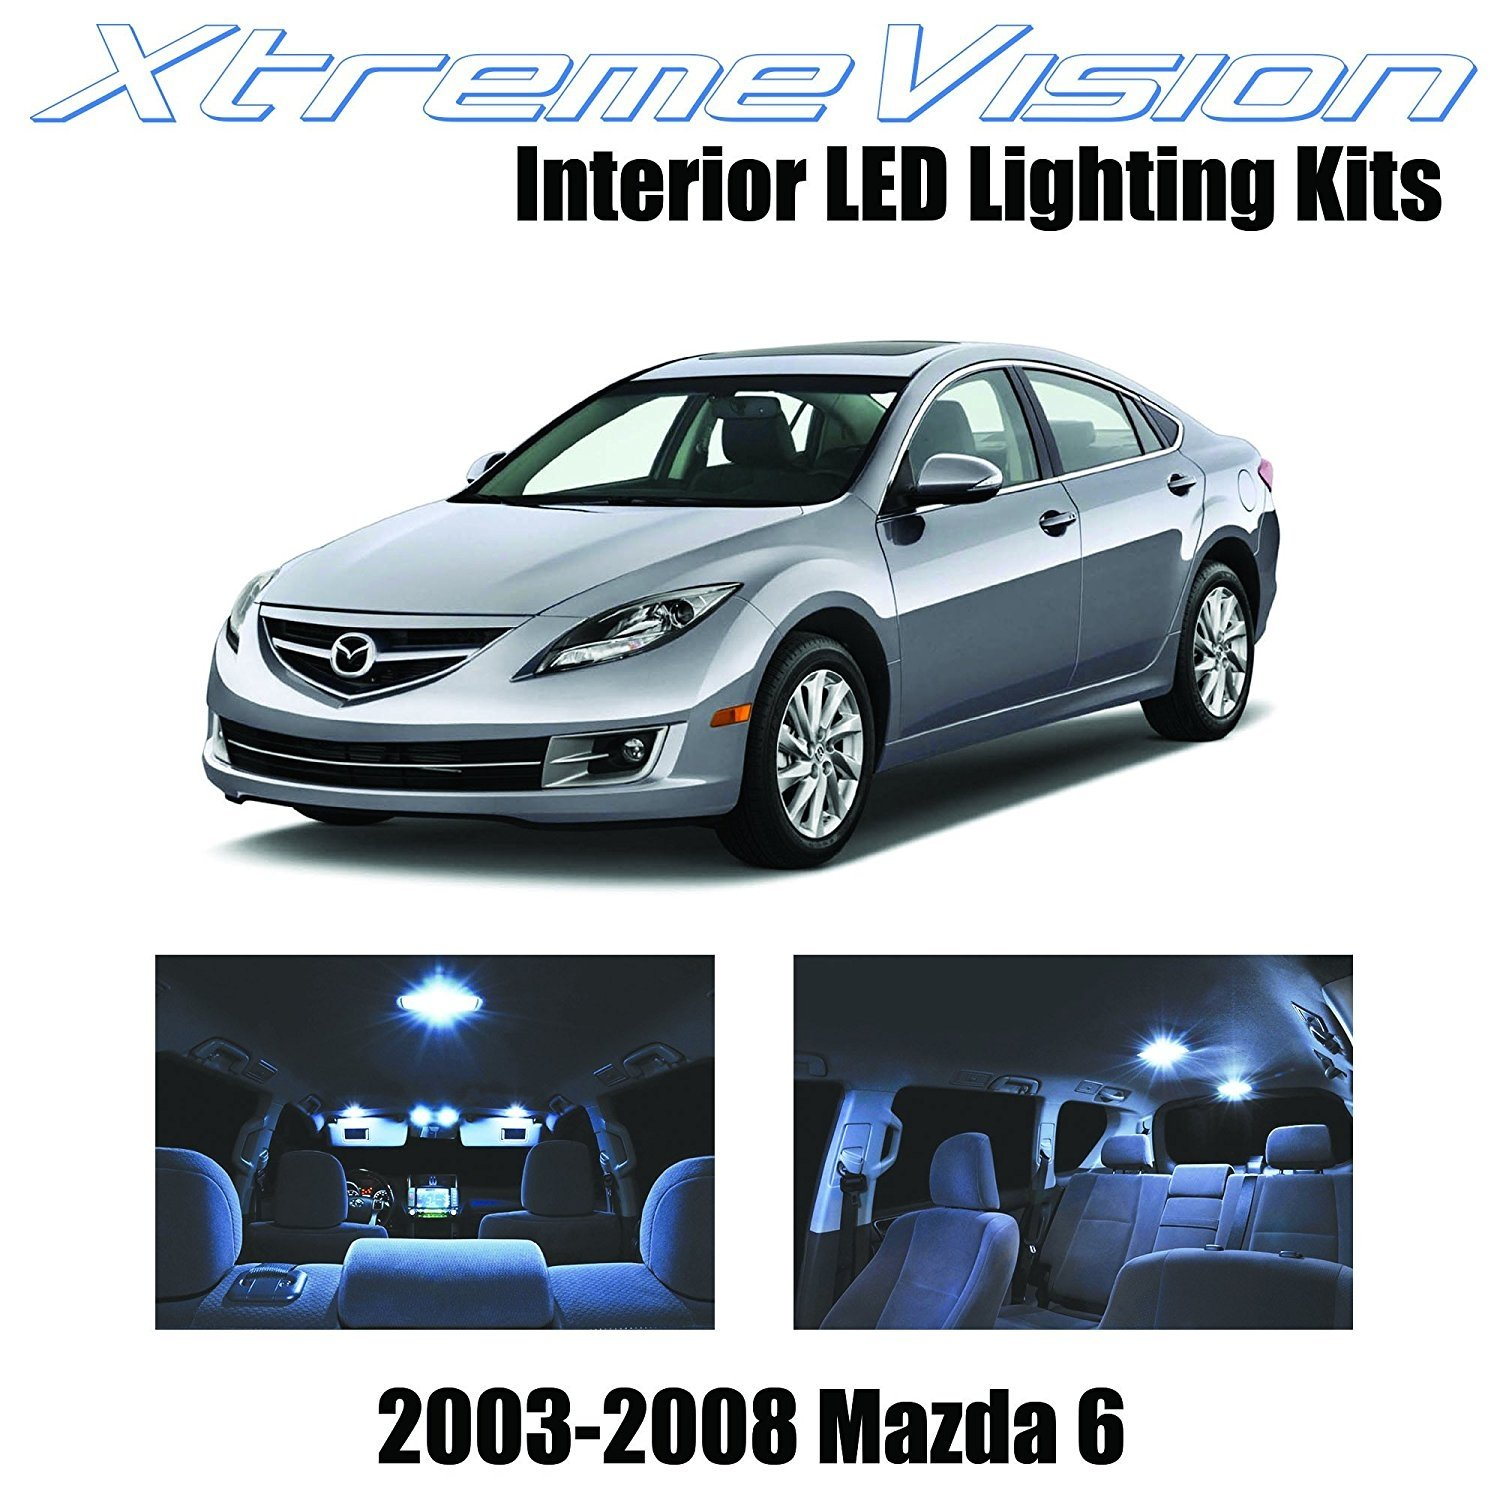 XtremeVision LED for Mazda 6 2003-2008 (8 Pieces) Cool White Premium Interior LED Kit Package +Installation Tool